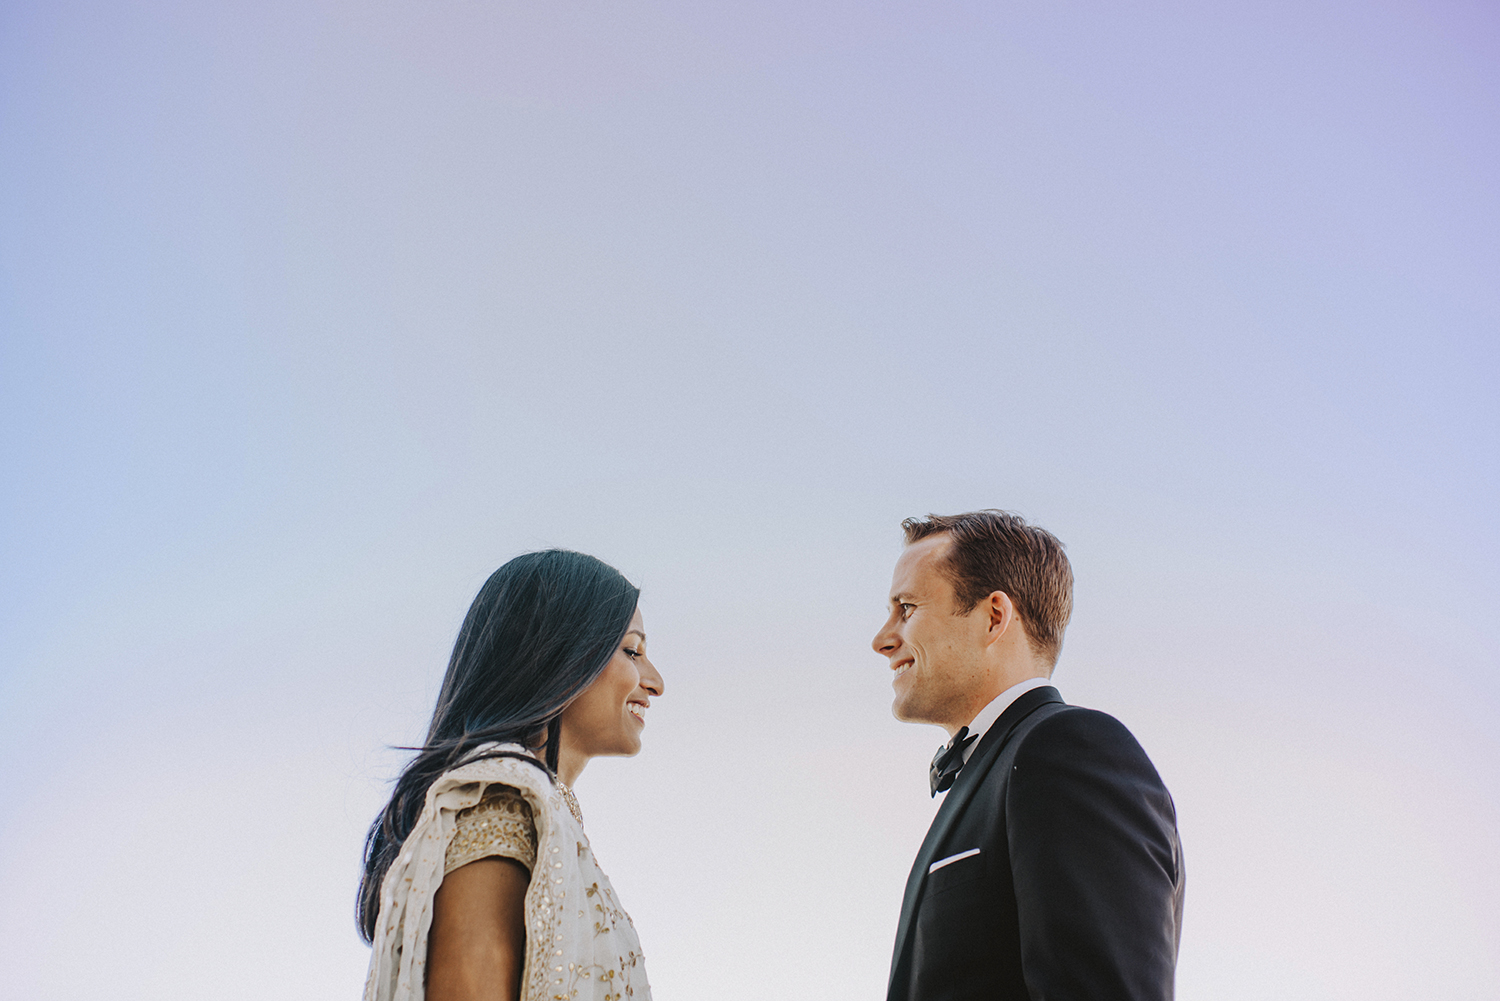 JOSEPH-WEST-PHOTOGRAPHY-BOTB-WEDDINGS-SUBMISSION-2014-0013.JPG